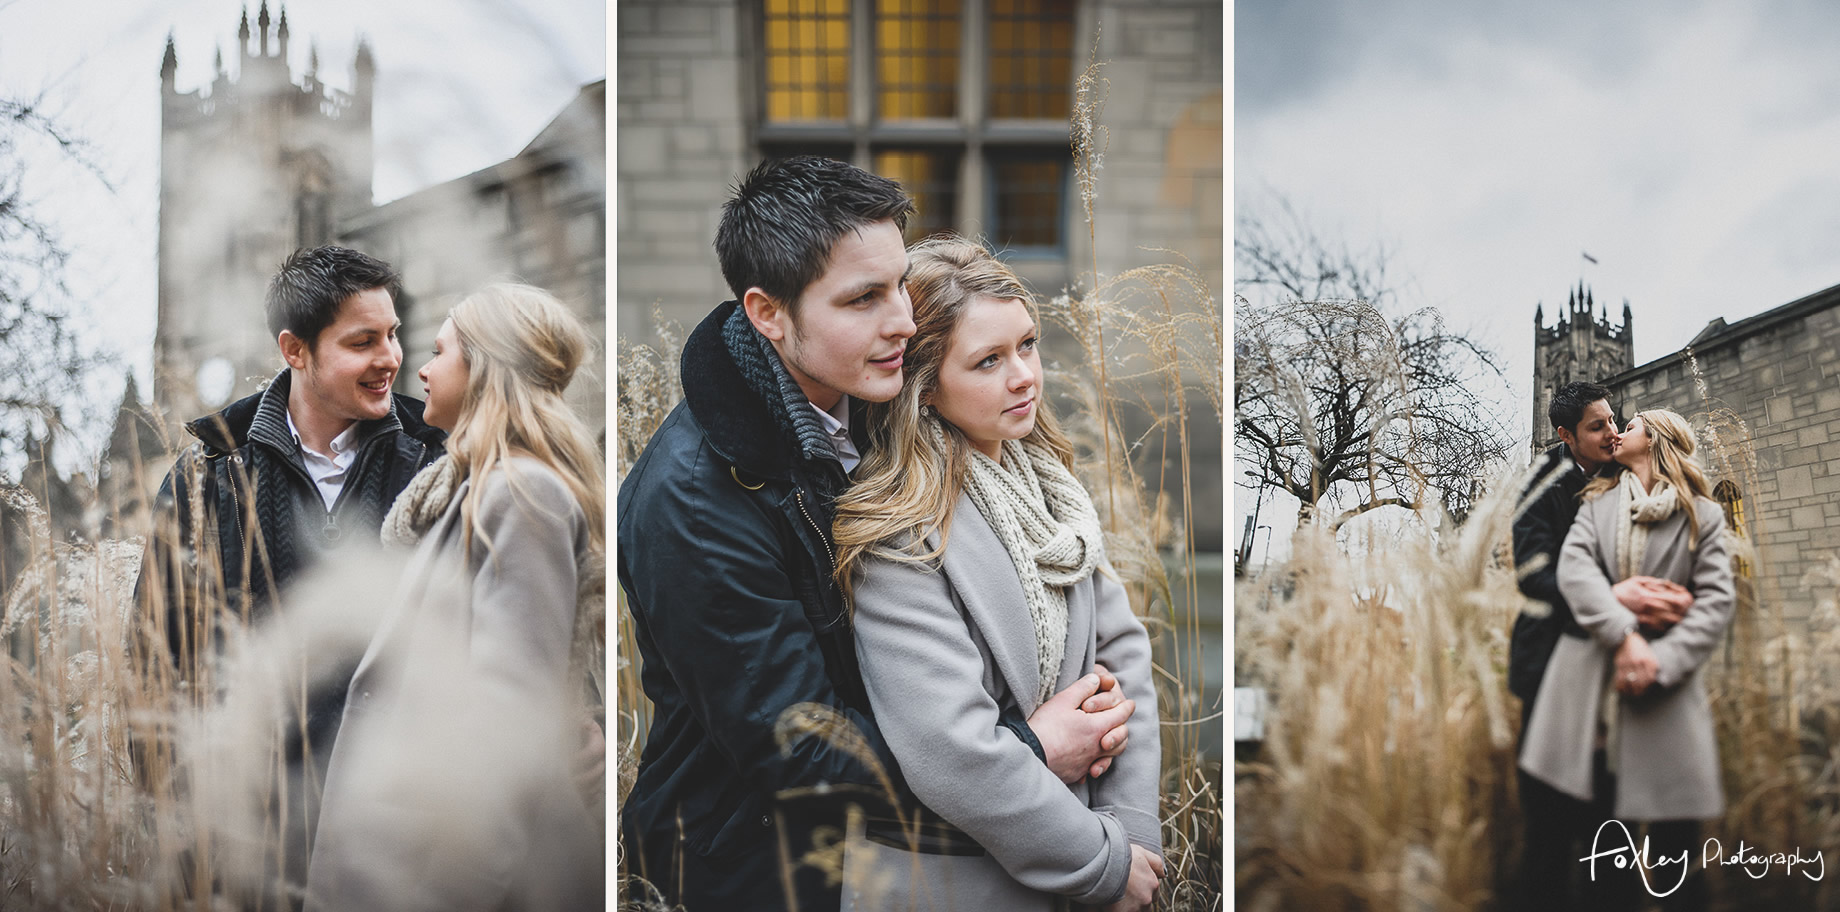 Gemma-and-Lewis-Pre-Wedding-Shoot-Manchester-City-Centre-040